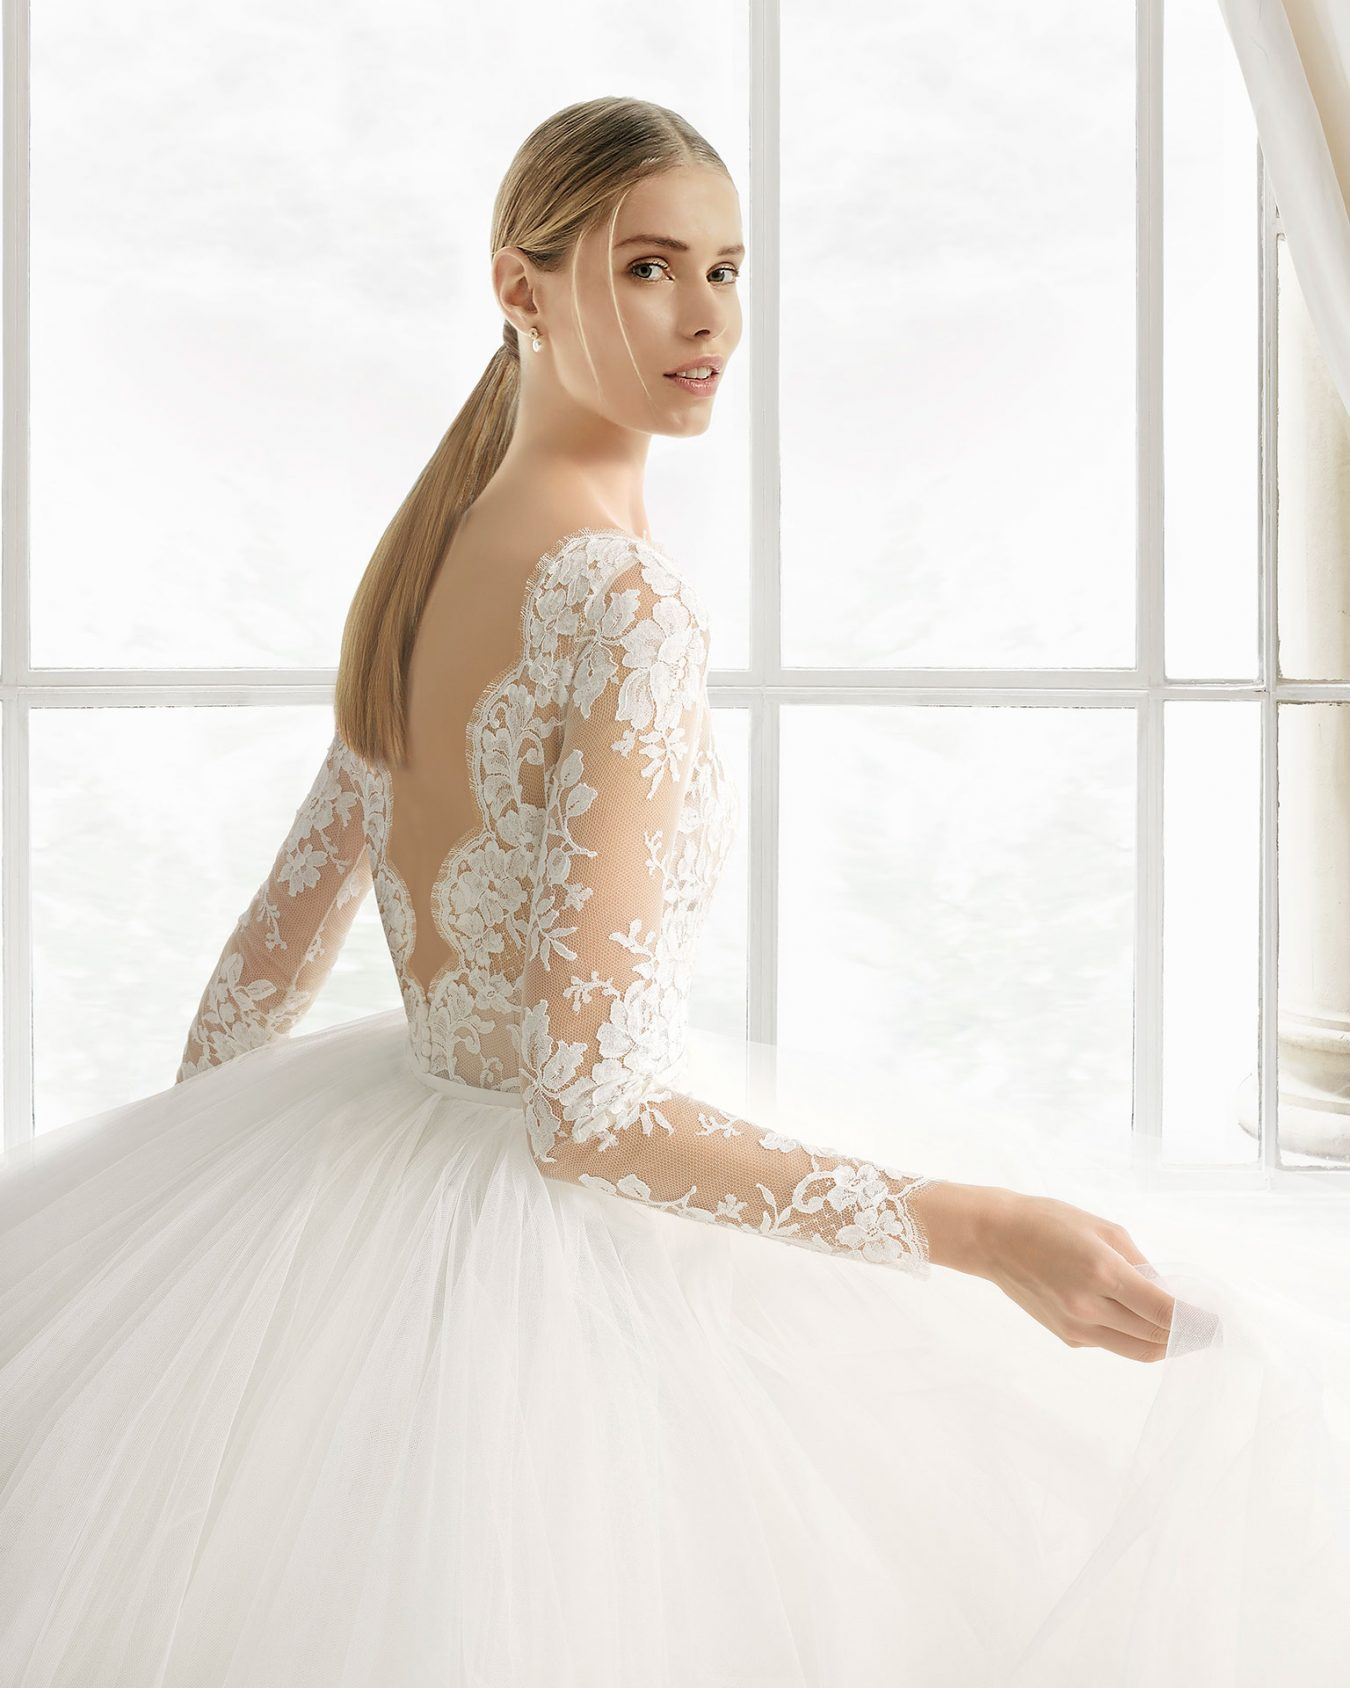 The Mode wedding gowns